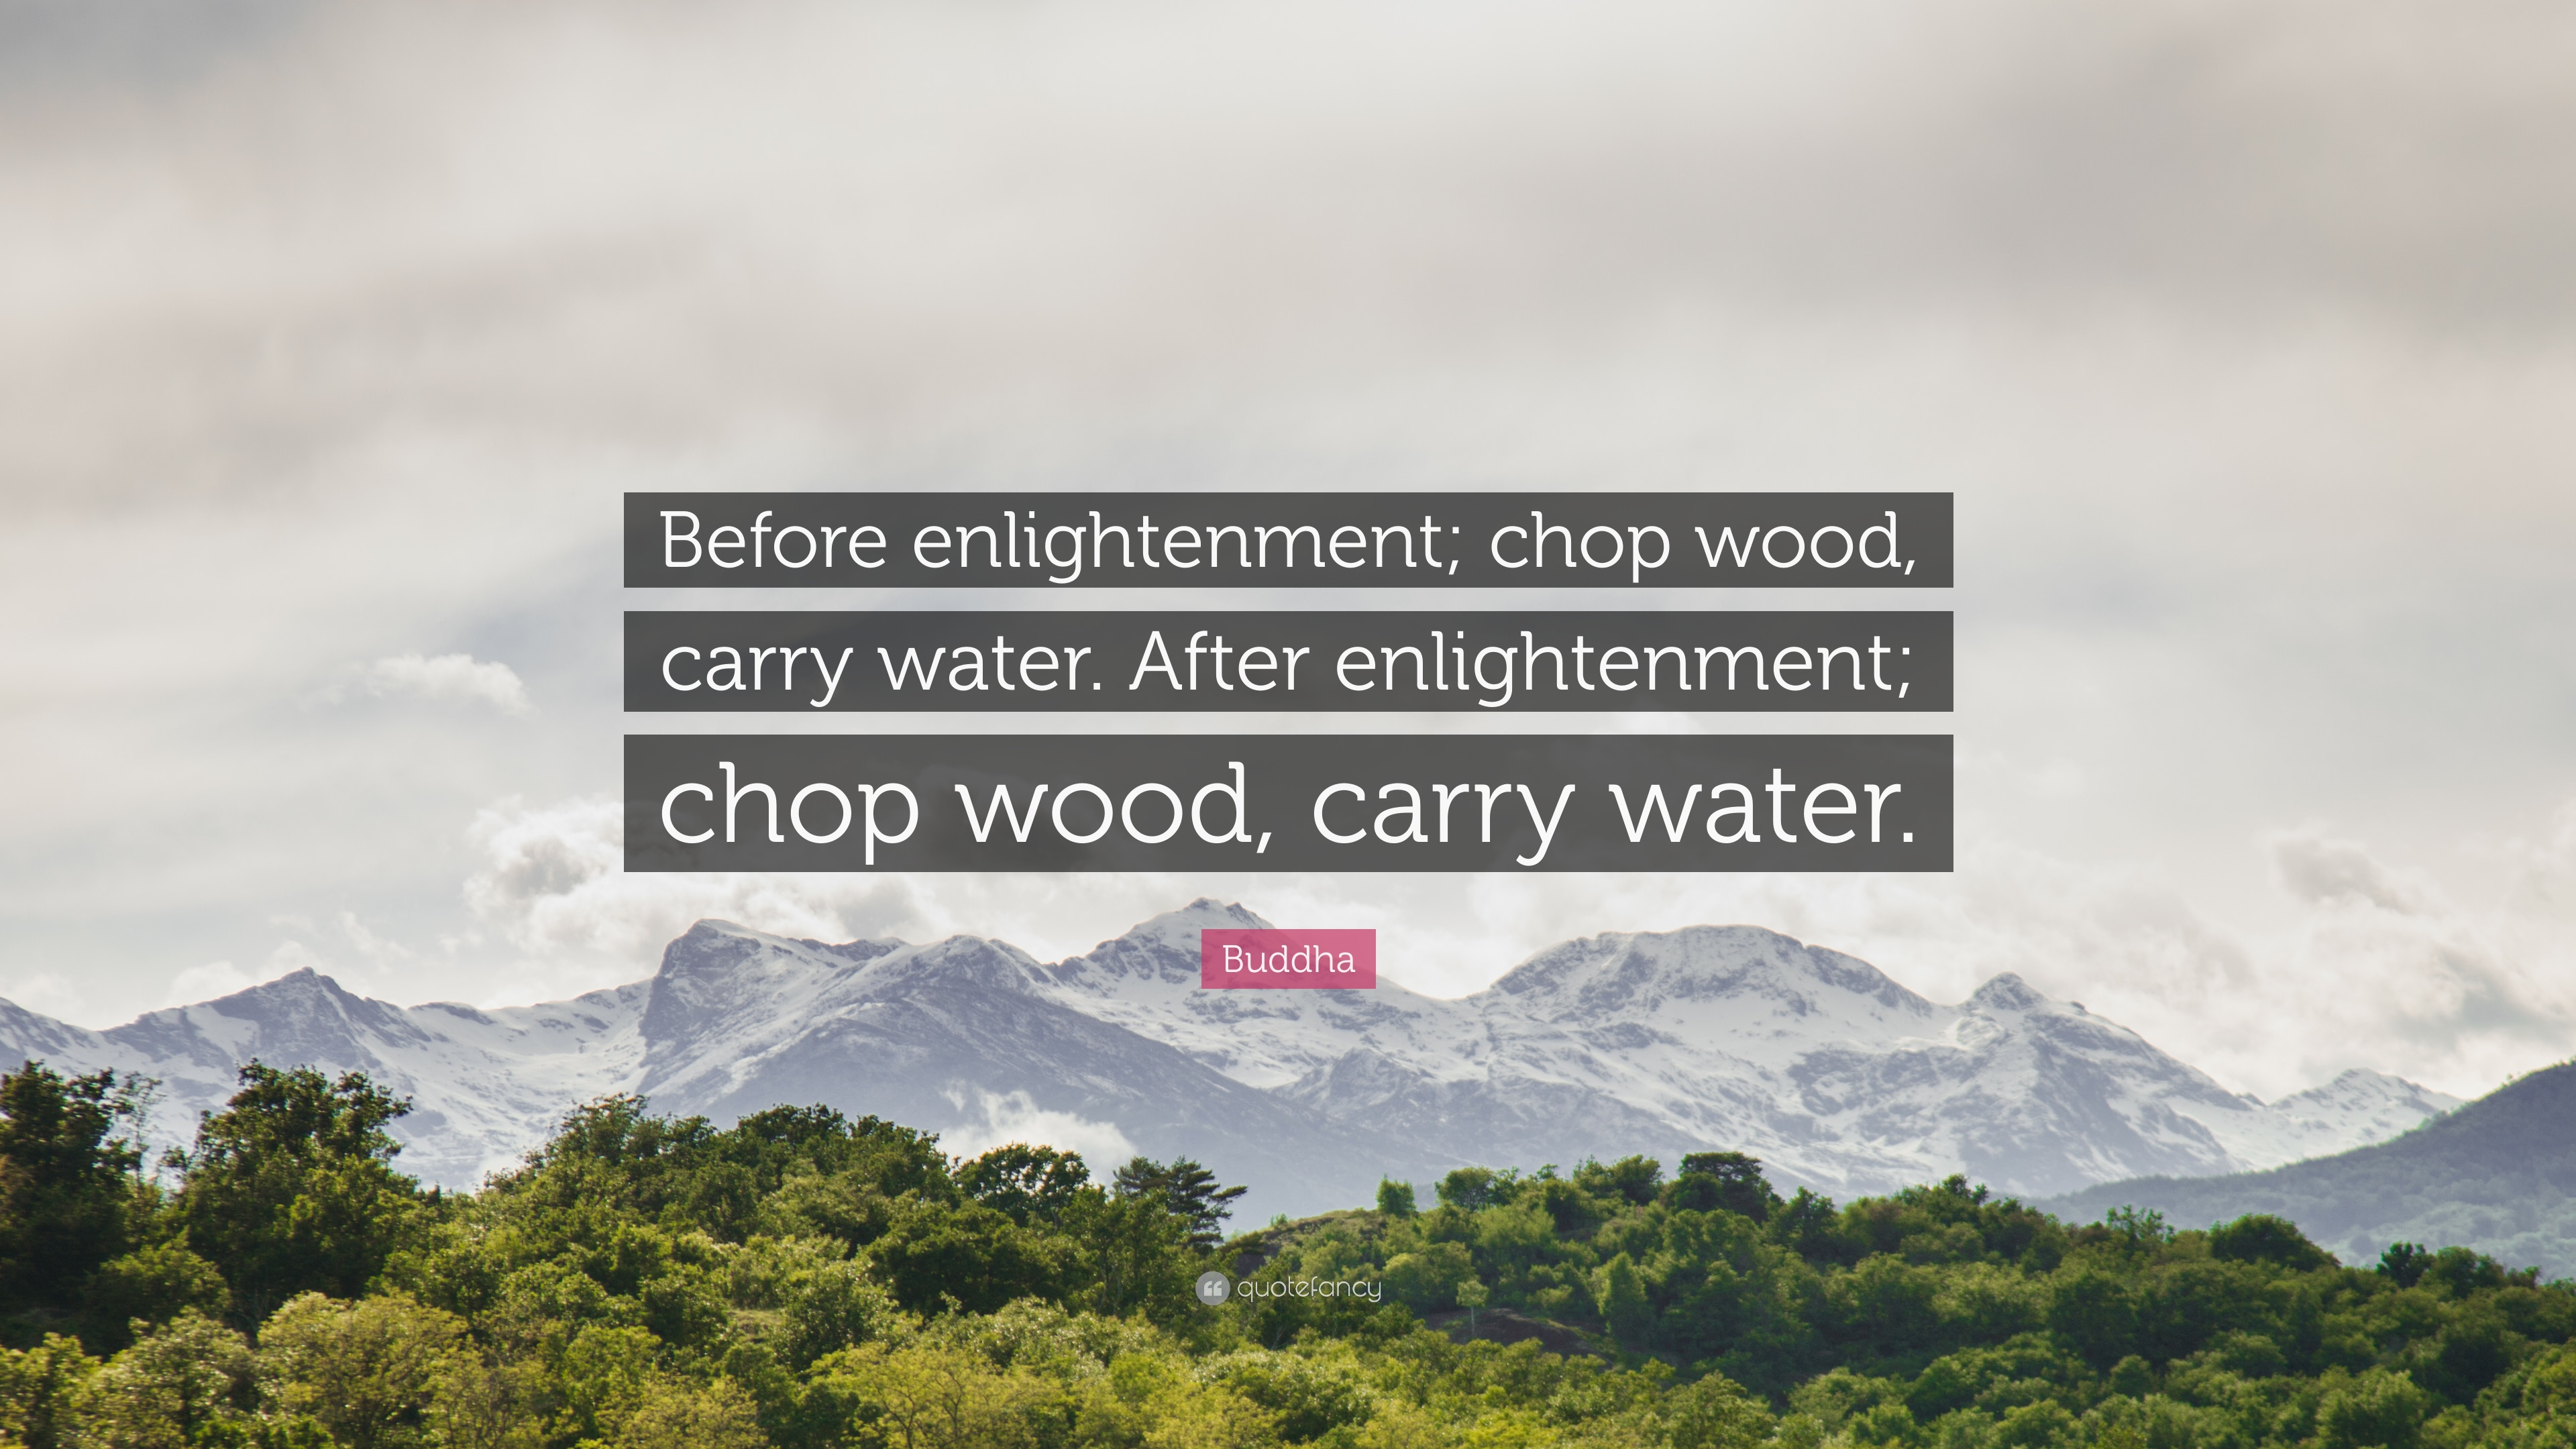 buddha quote u201cbefore enlightenment chop wood carry water after rh quotefancy com chop wood carry water joshua medcalf pdf chop wood carry water book